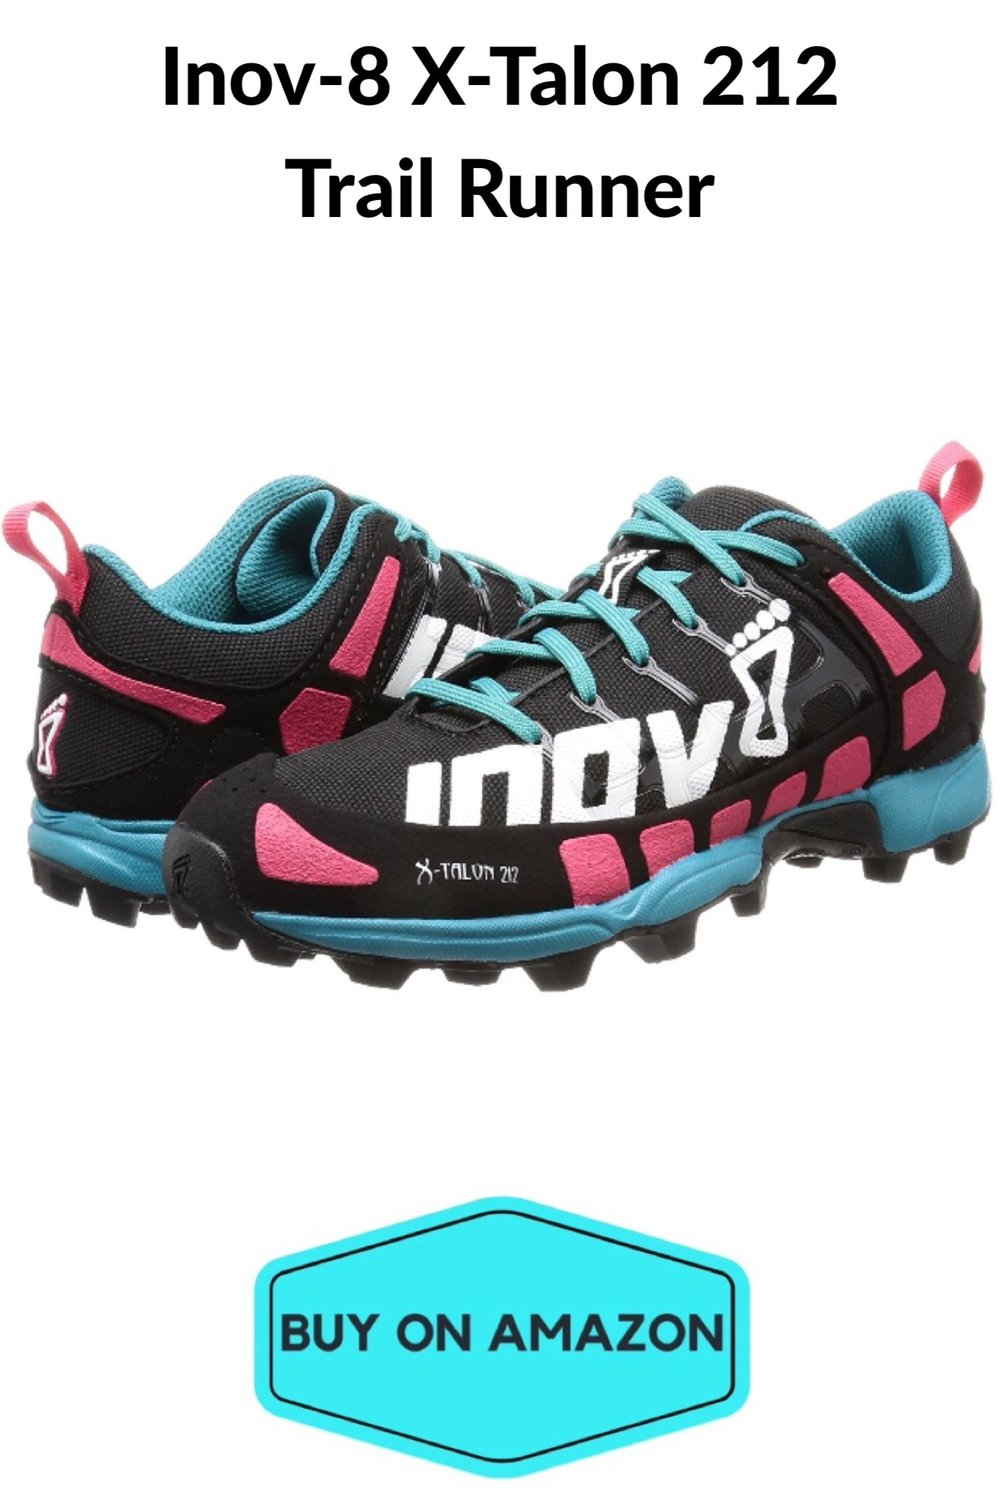 Inov-8 X-Talon 212 Women's Trail Runner